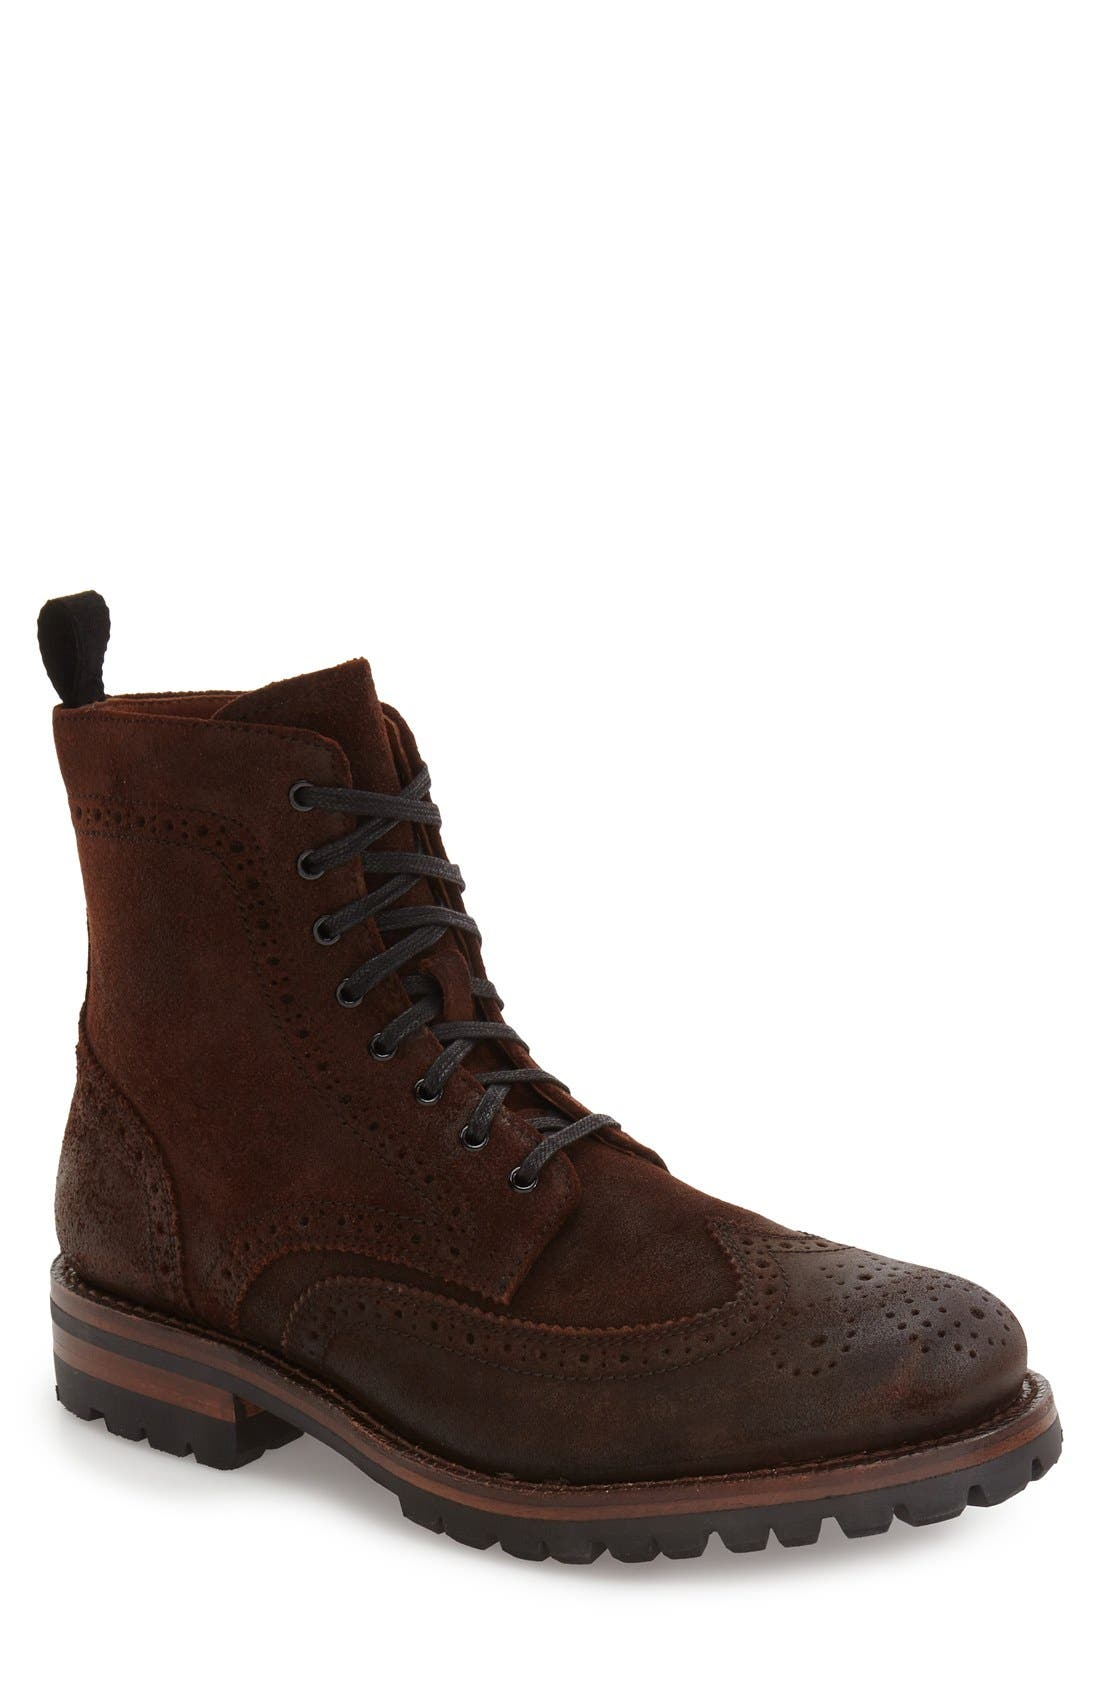 George Wingtip Boot,                         Main,                         color, 230